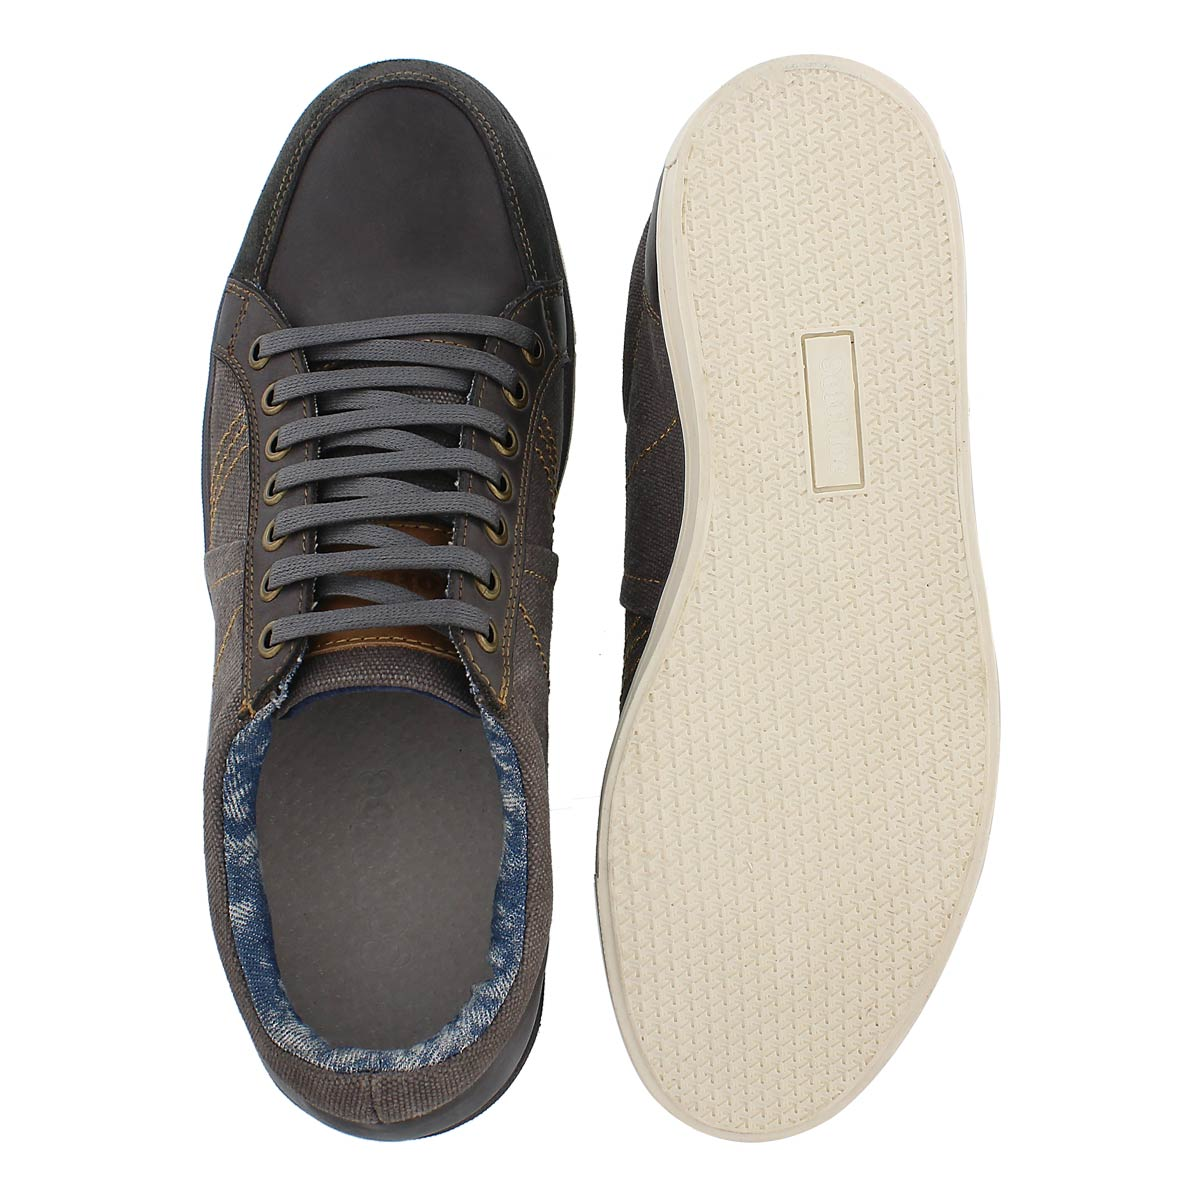 Mns Vagabond grey canvas/leather sneaker